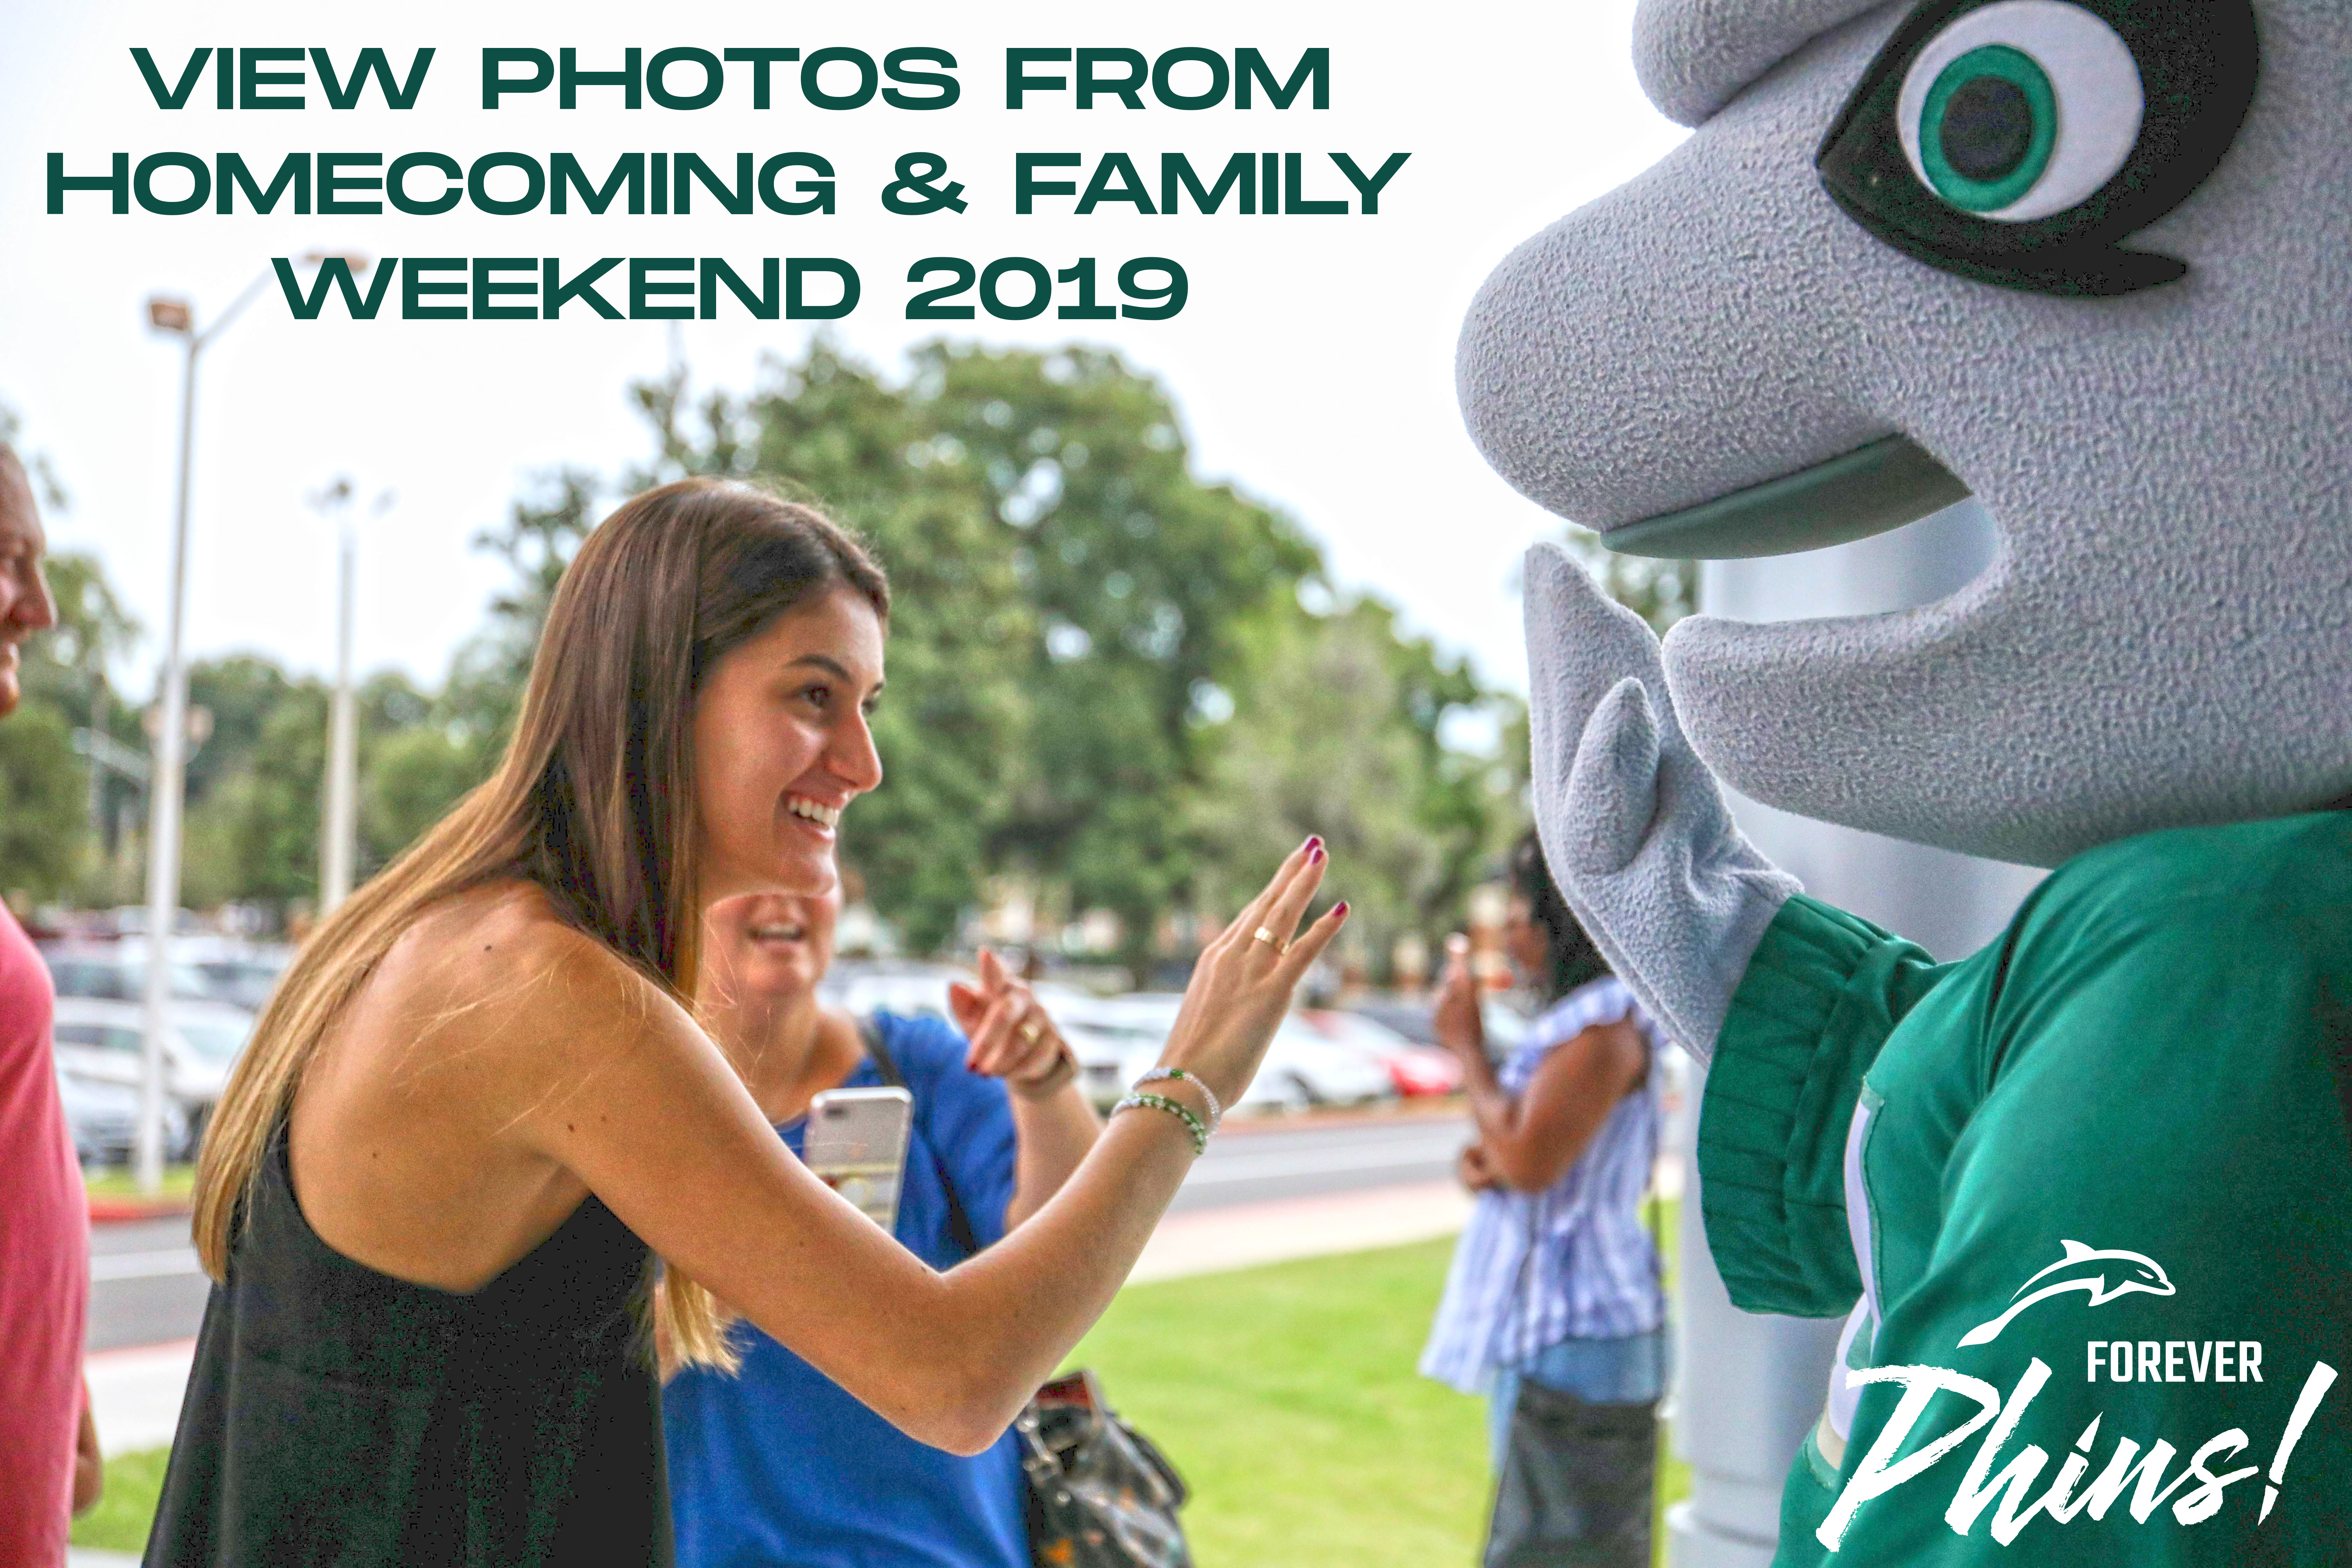 View Photos from Homecoming & Family Weekend 2019 - Dunkin High Five